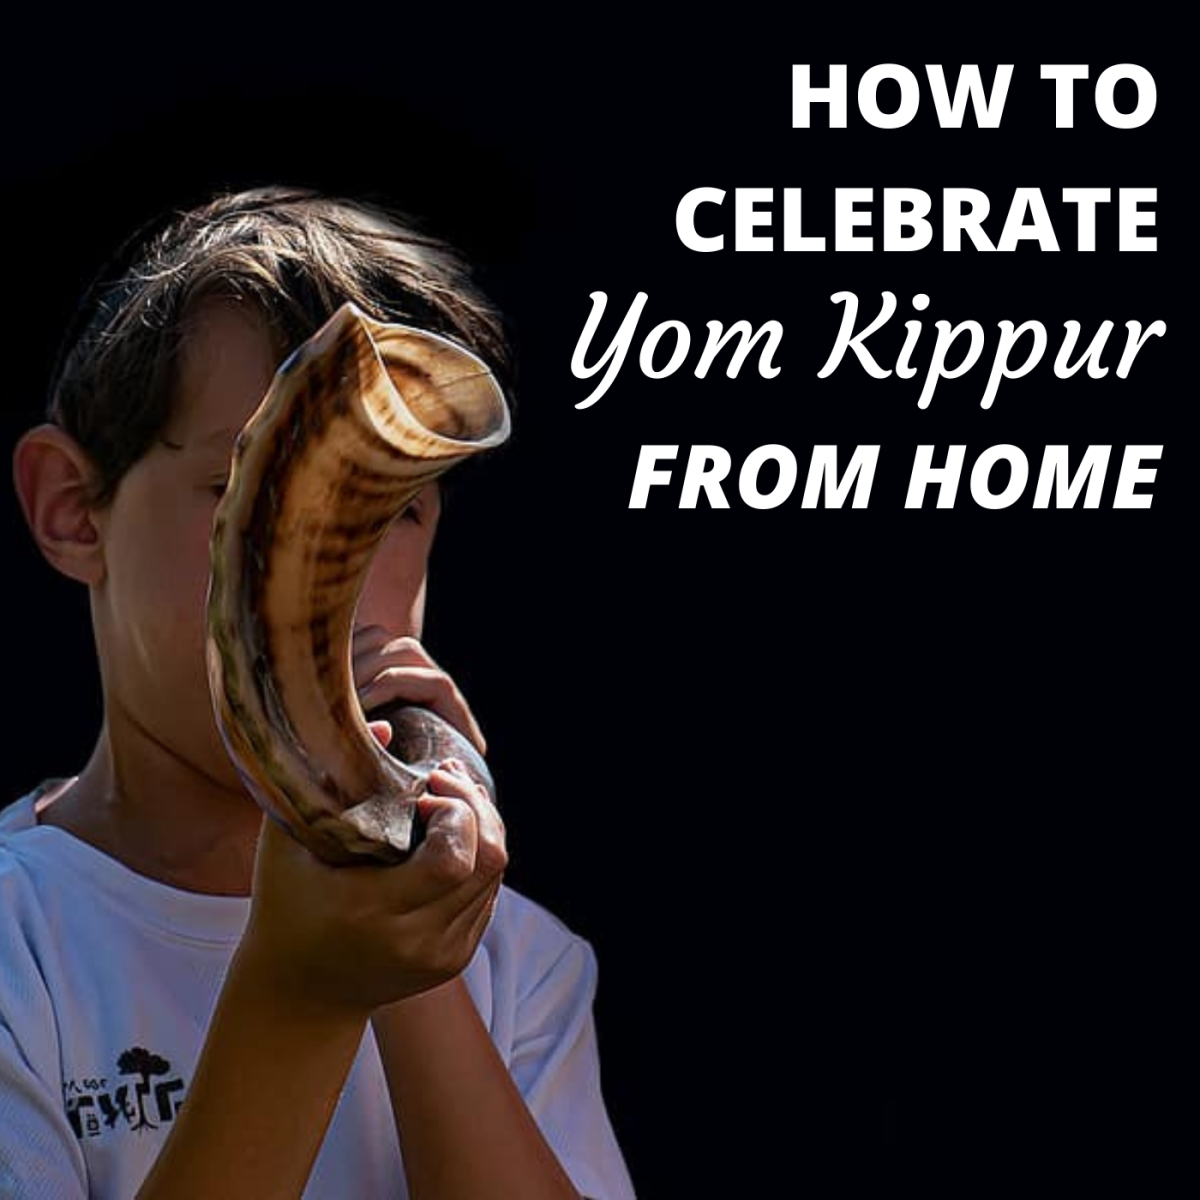 4 Ways to Celebrate Yom Kippur Without Going to Temple